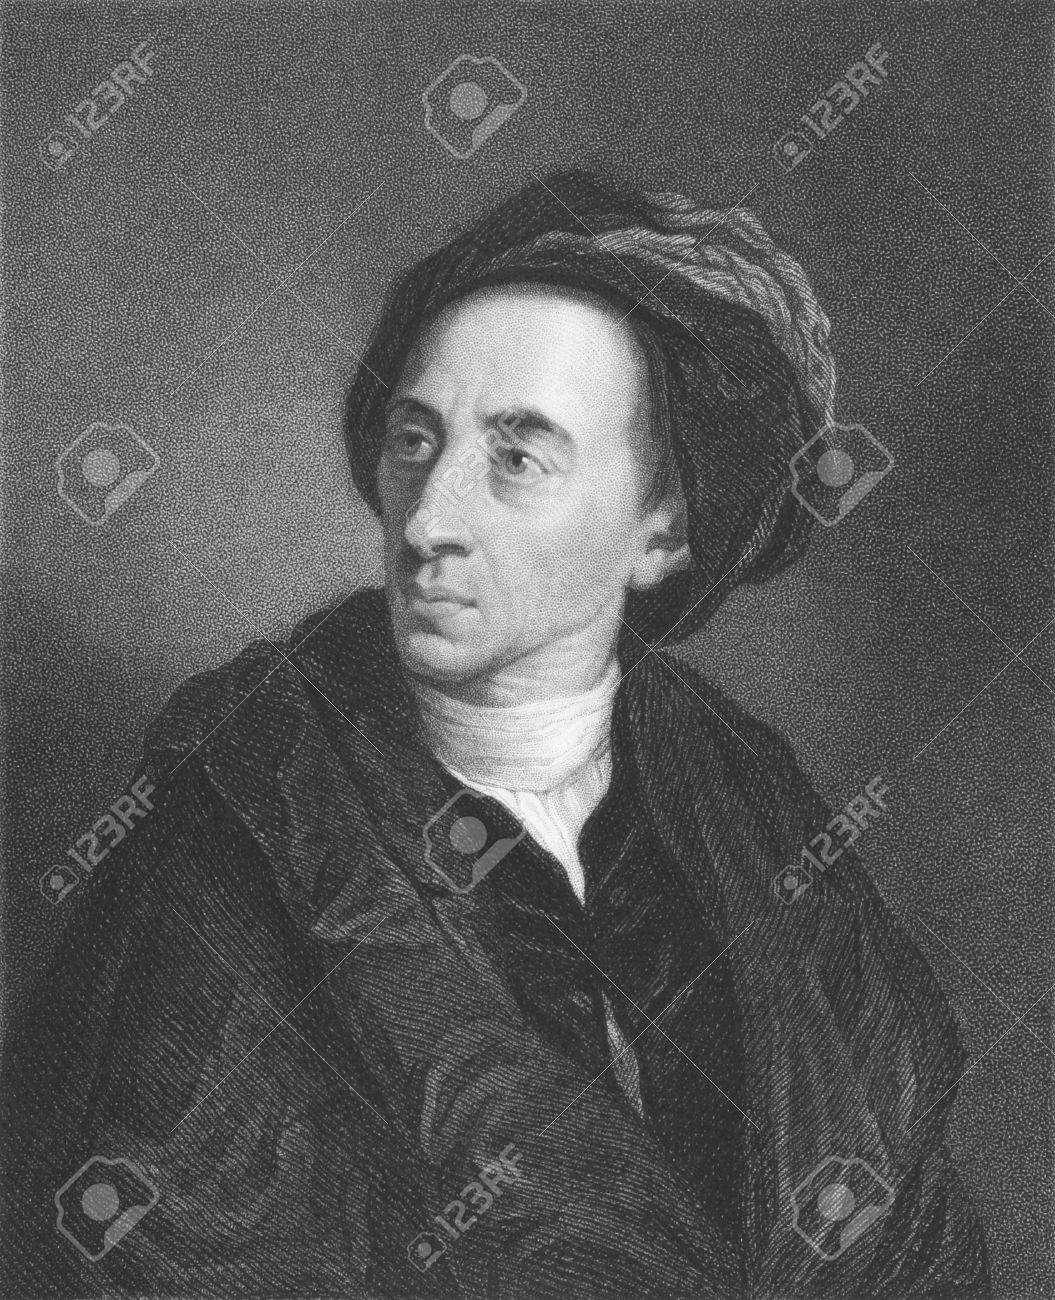 Alexander Pope on engraving from the 1850s. English poet best known for his satirical verse and translation of Homer. Stock Photo - 6222007